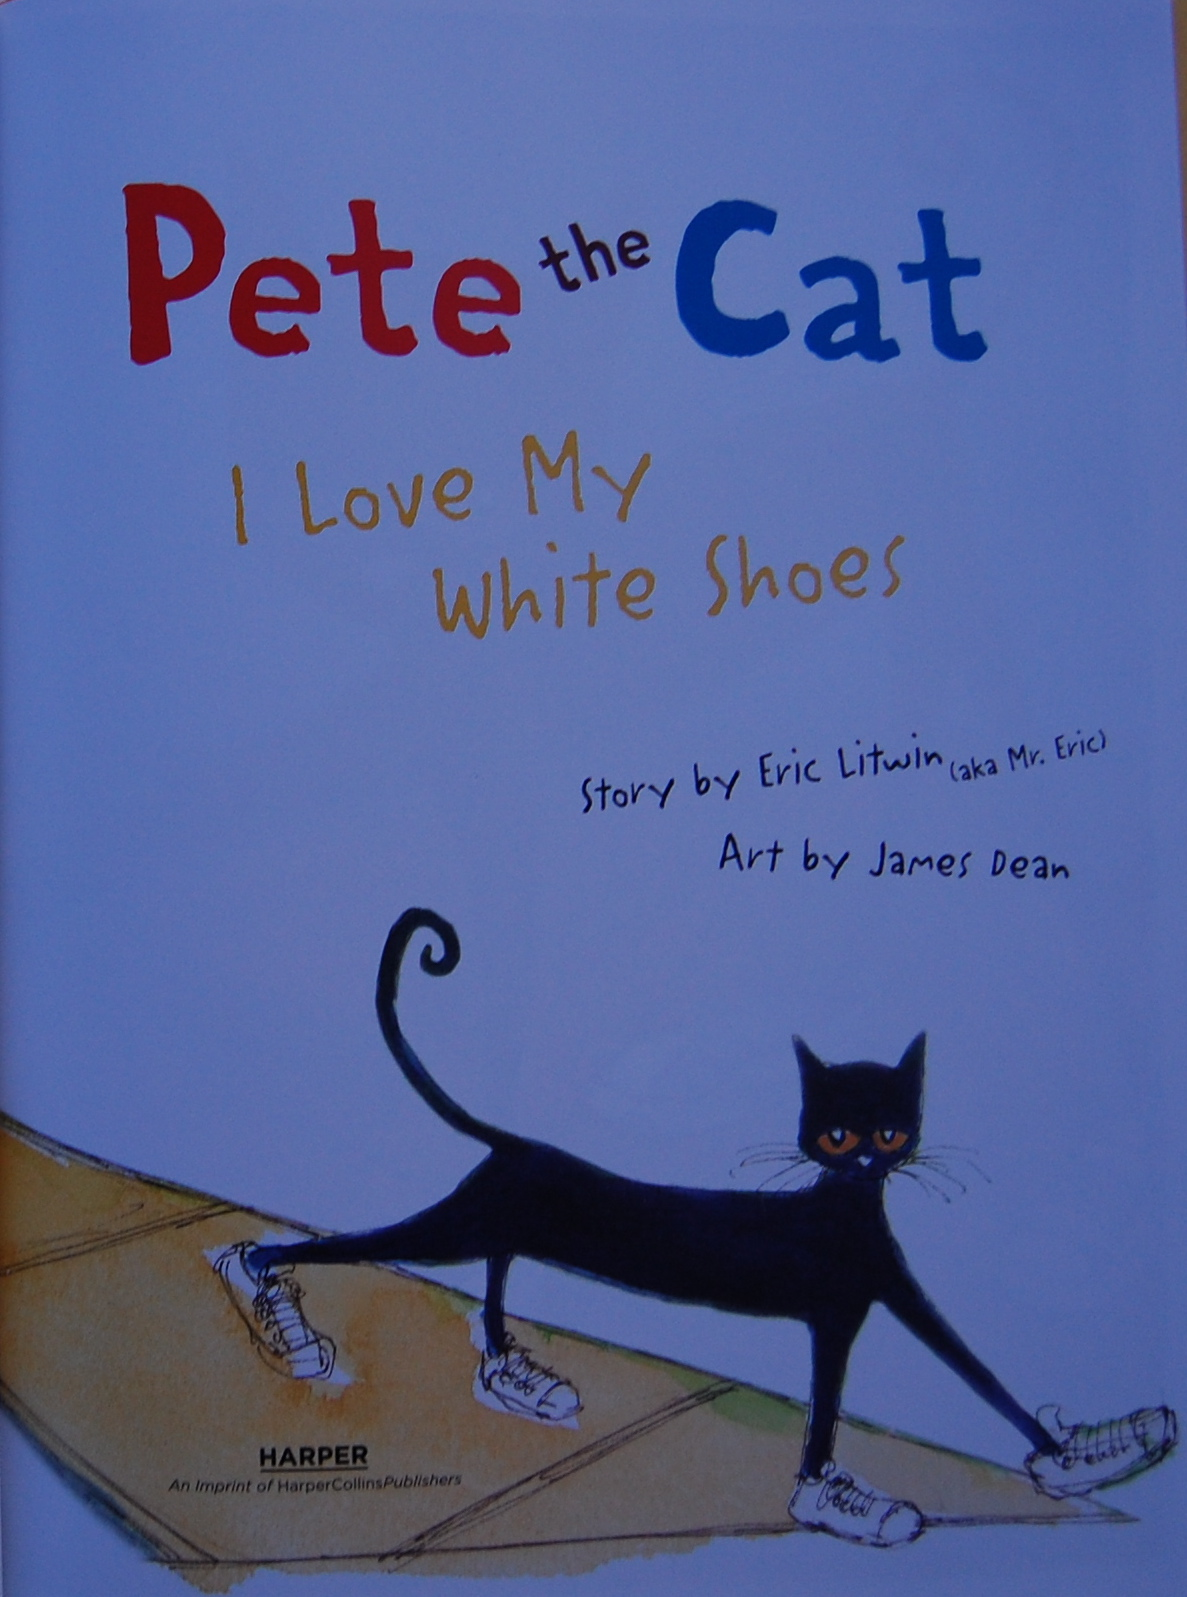 Pete The Cat White Shoes Song Free Download